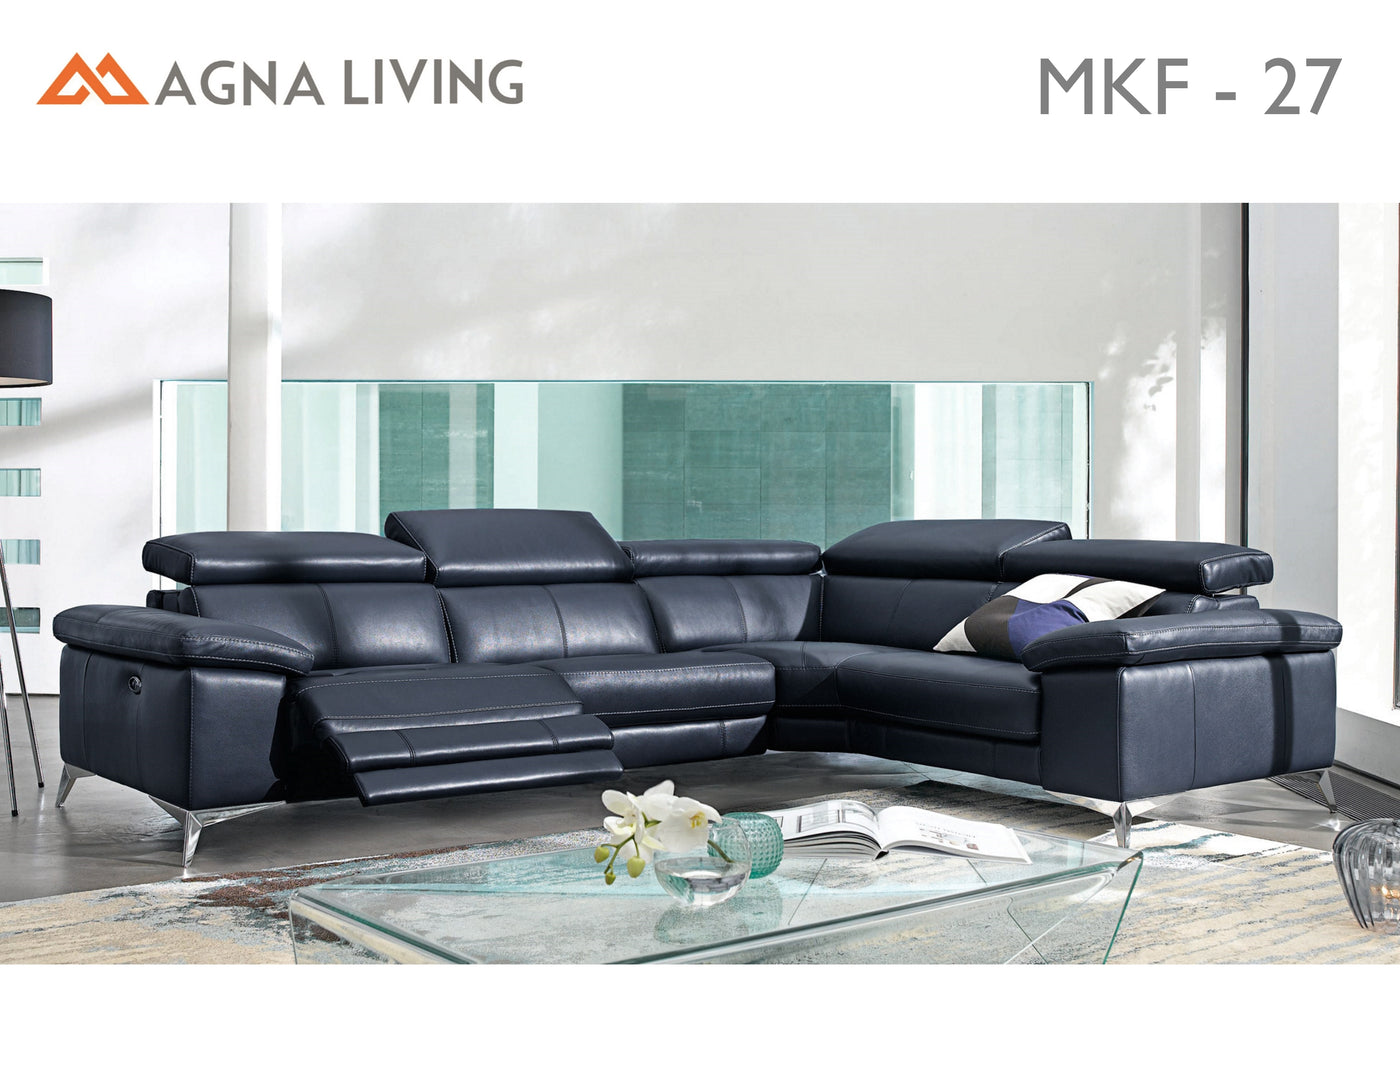 Magna Living Avalon MKF27 Leather Power Reclining 4 Piece Sectional Sofa *  (CURRENTLY ON FURNITURE SHOWROOM FLOOR)